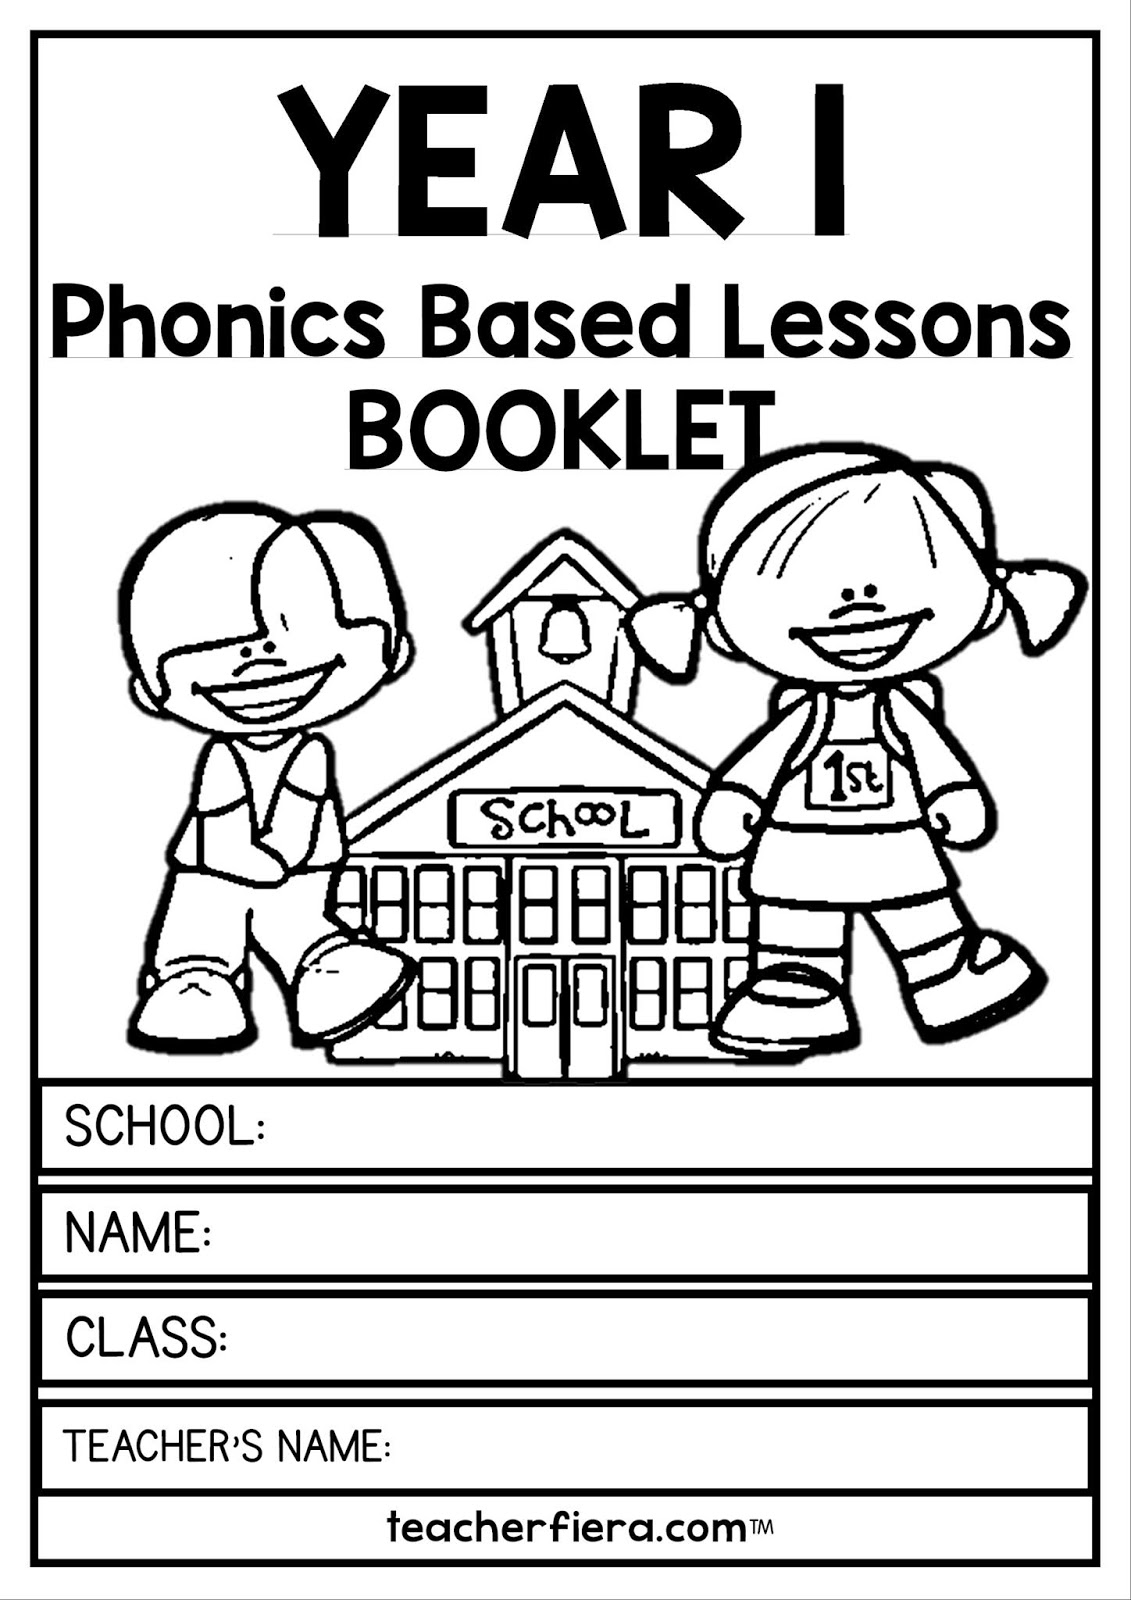 Teacherfiera Year 1 Phonics Based Lessons Booklet